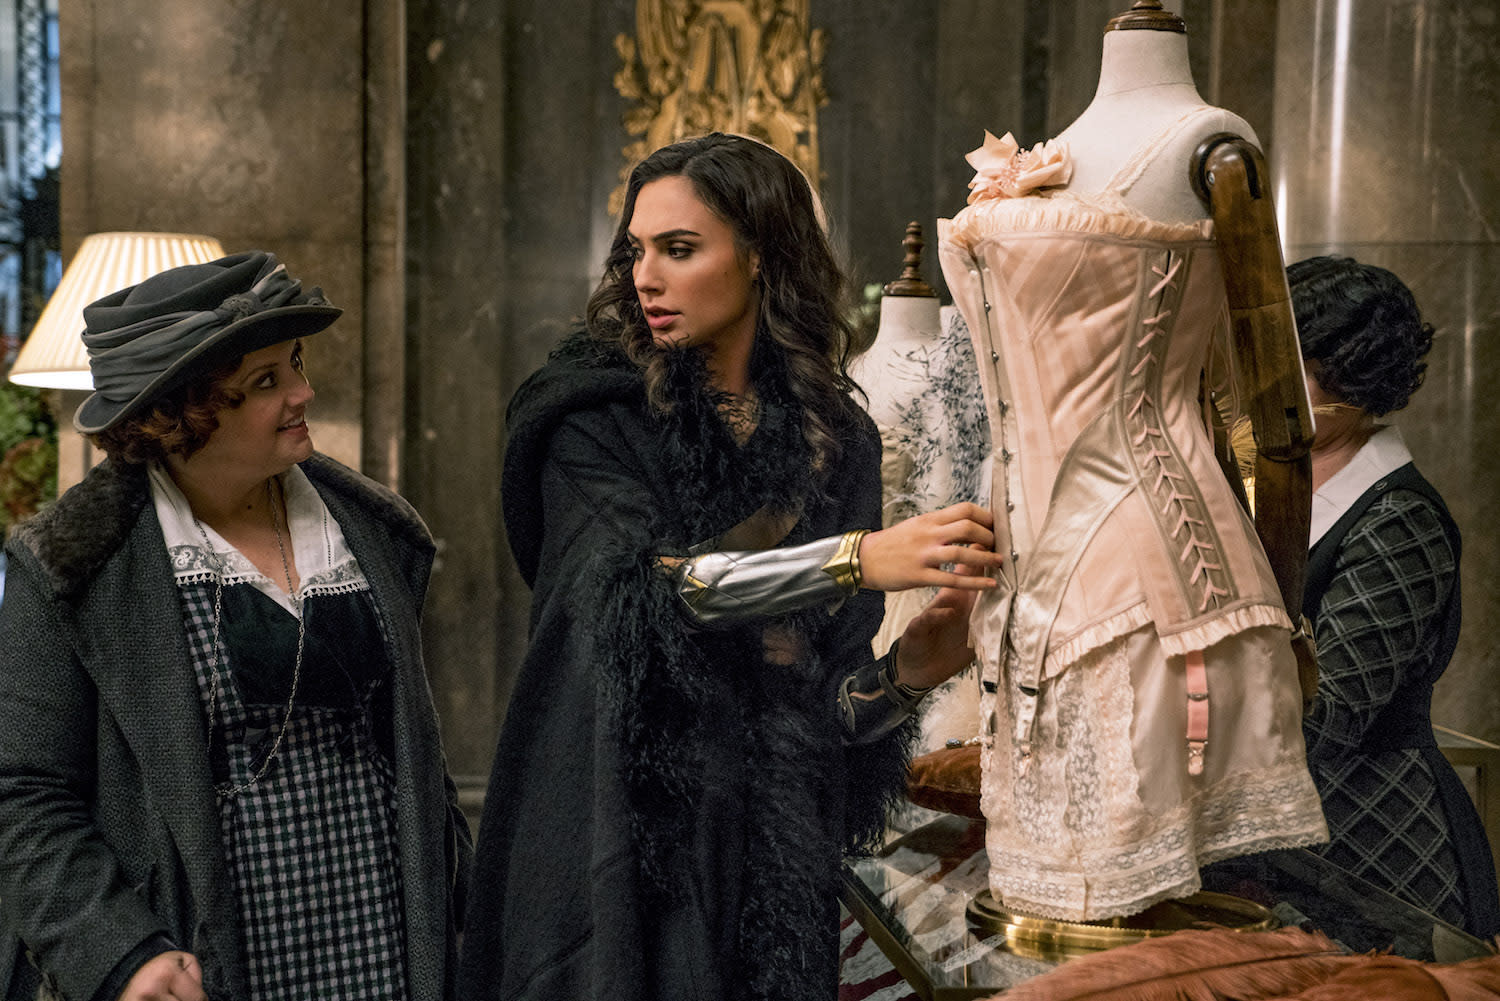 Lucy Davis as Etta Candy and Gal Gadot as Diana in 'Wonder Woman' (Photo: Warner Bros.)